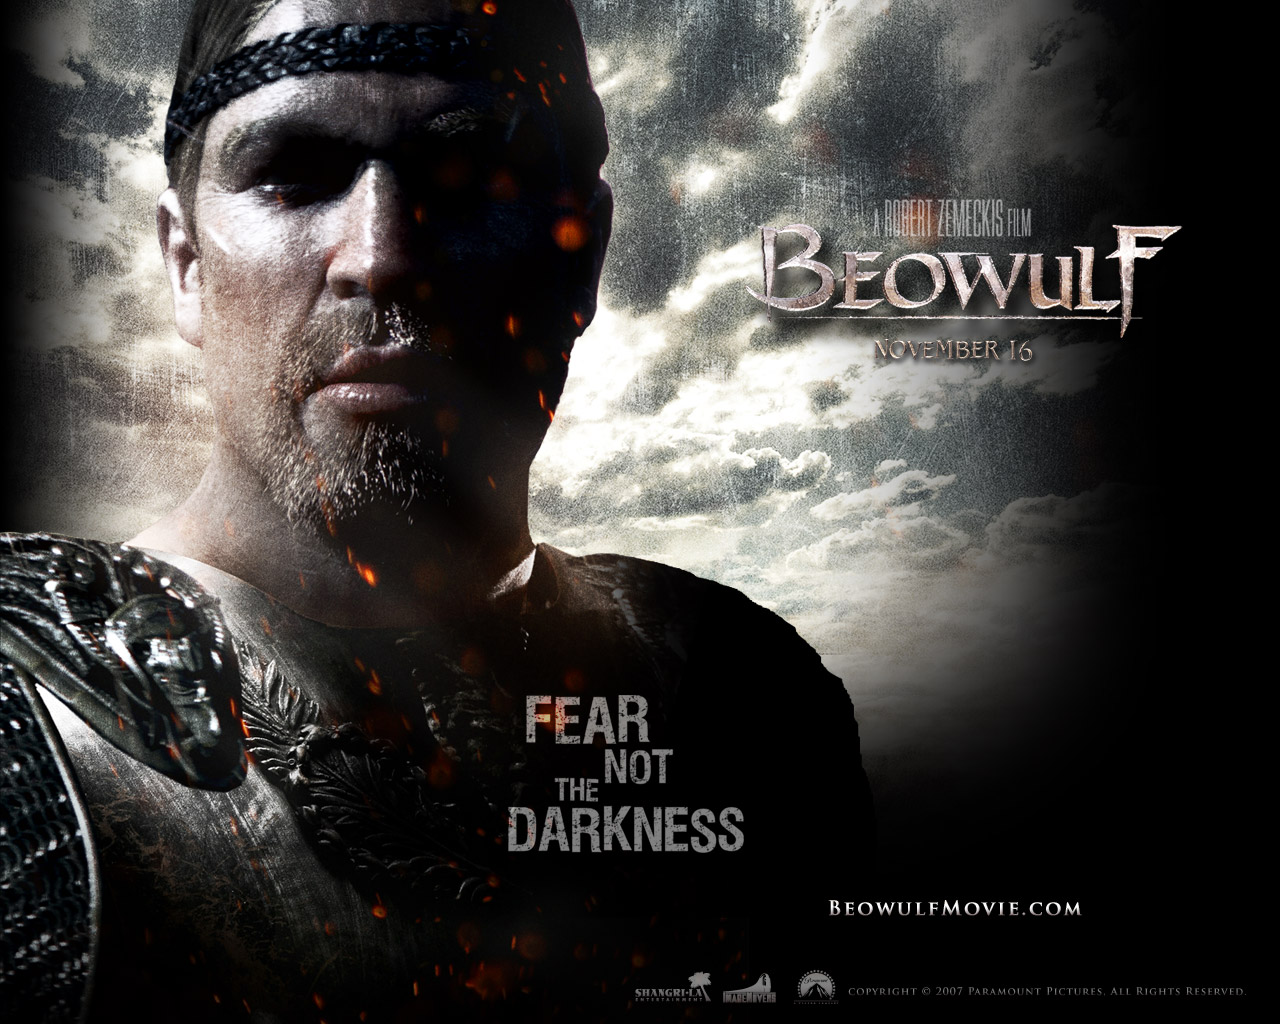 reaction paper about beowulf movie How to write a reaction paper a reaction or response paper requires the writer  to analyze a text, then develop commentary related to it it is a.